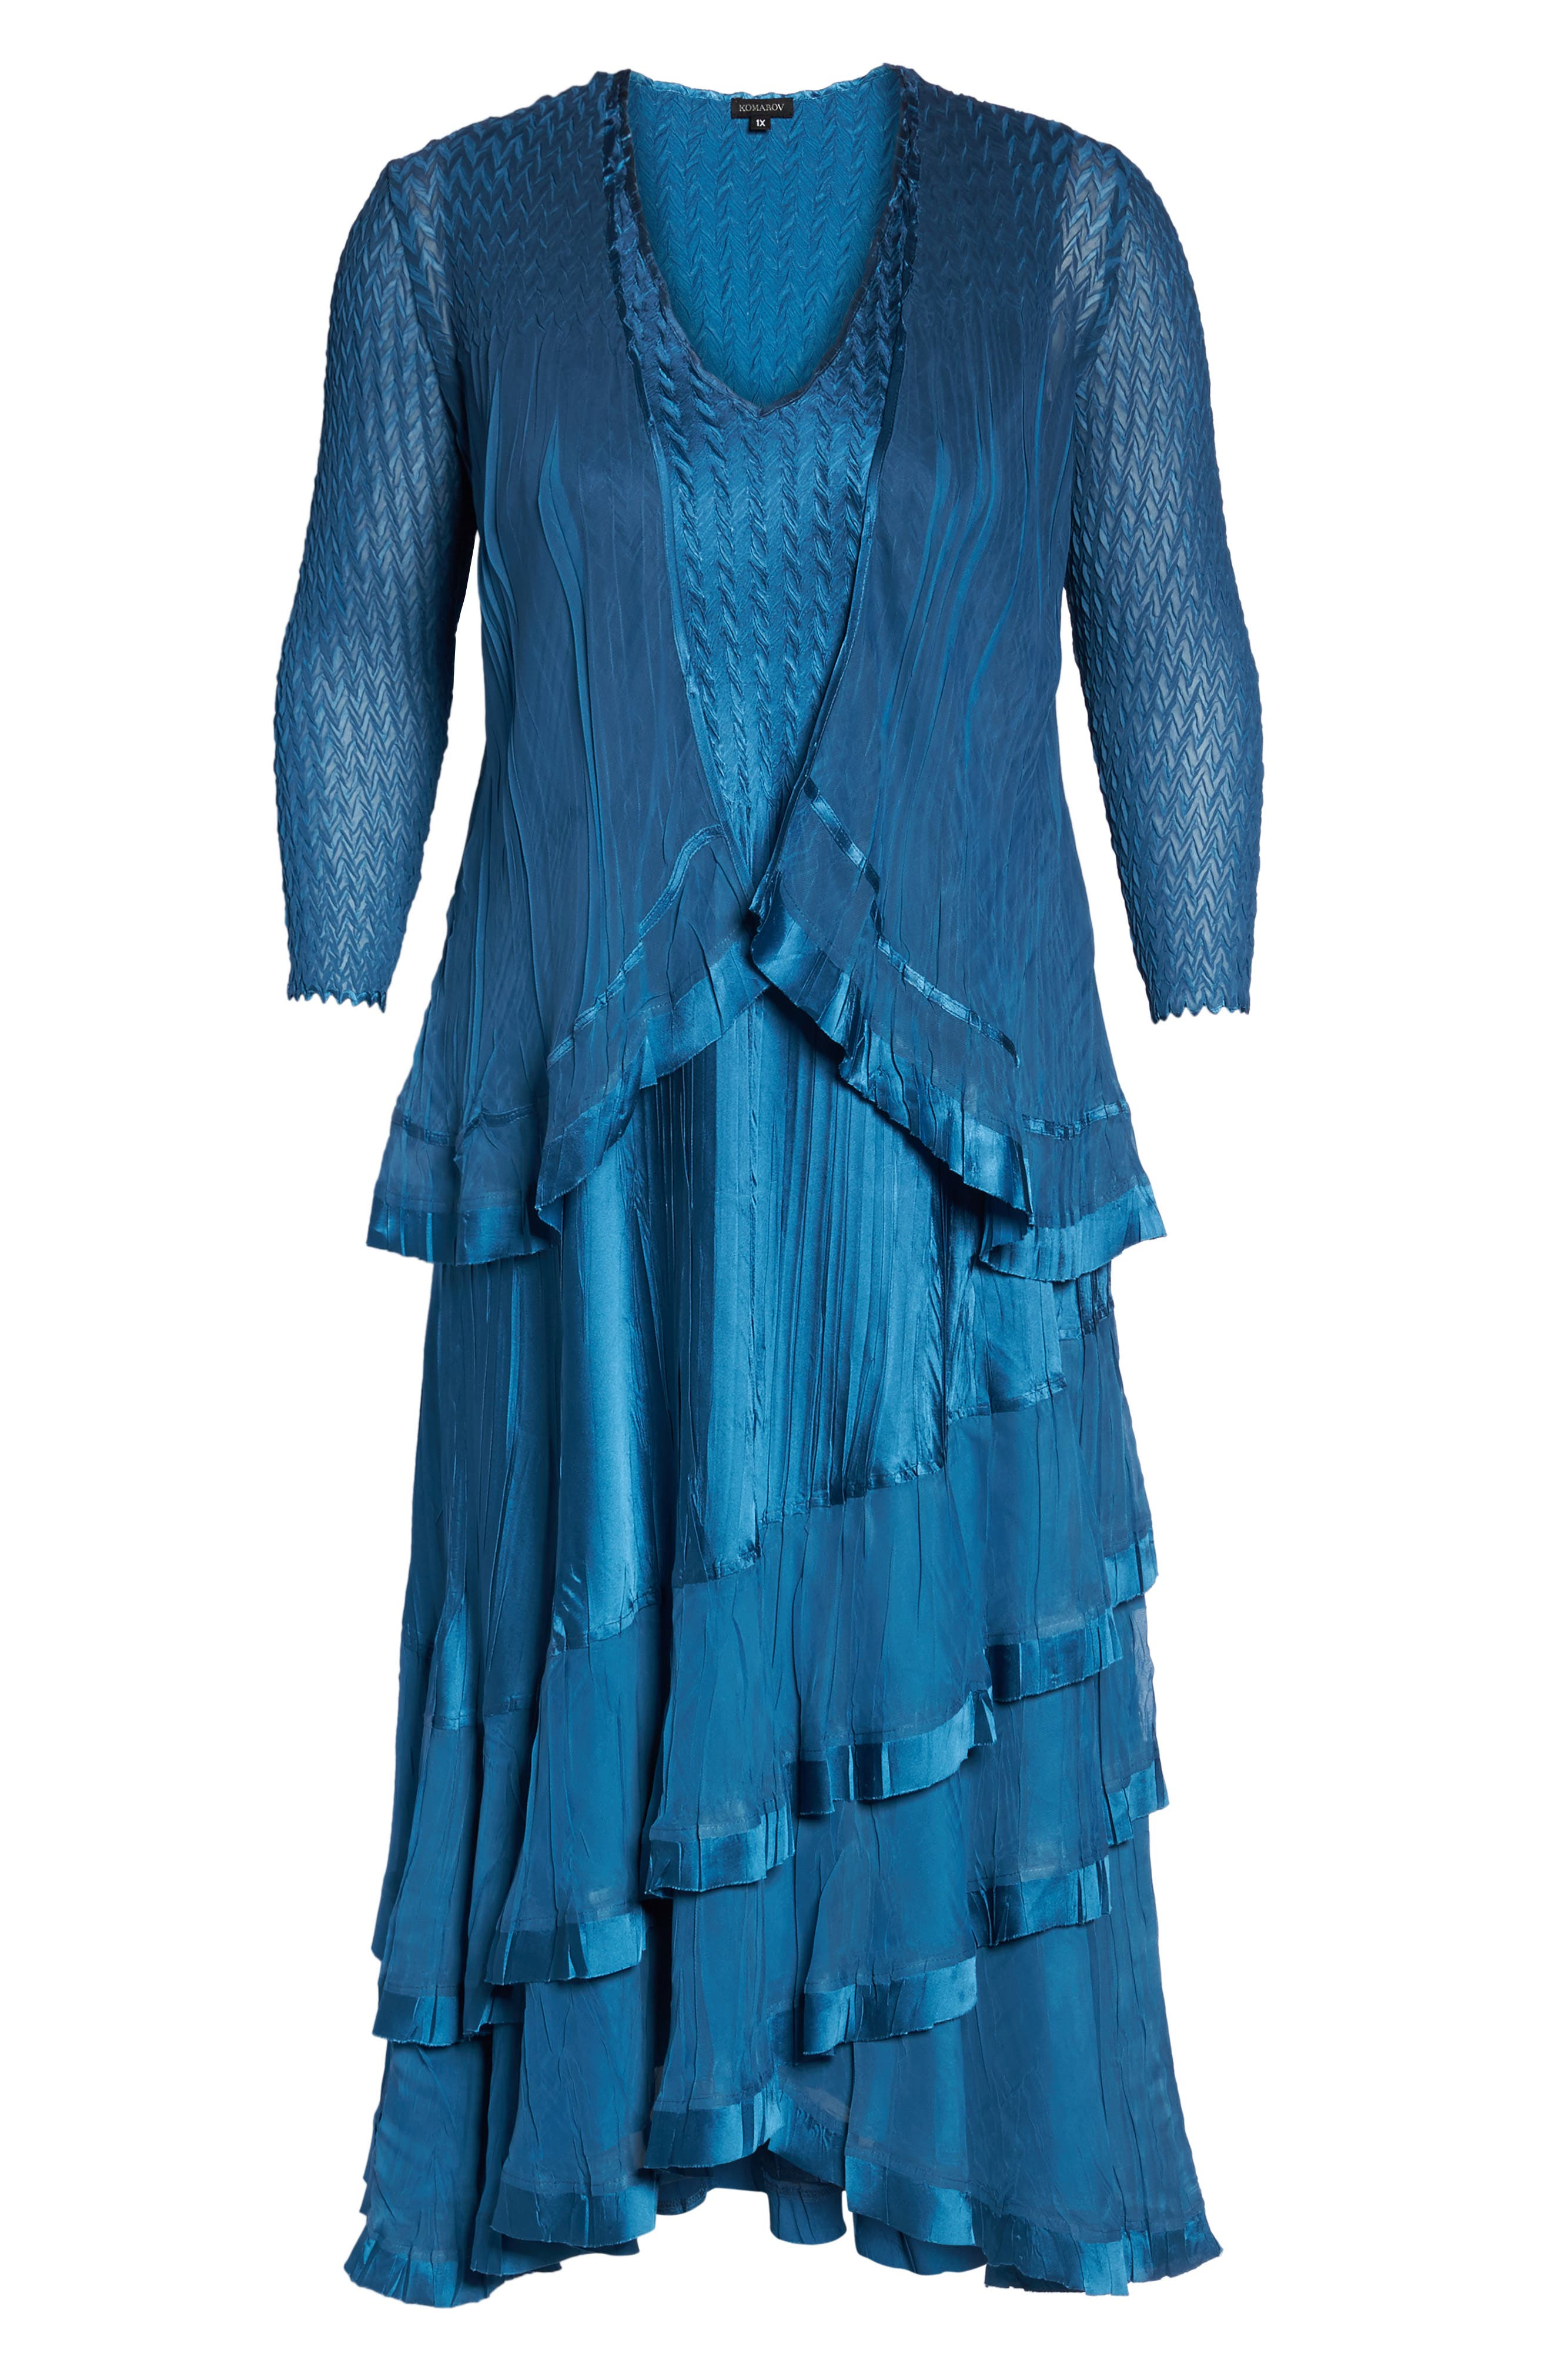 Tiered Dress with Jacket,                             Alternate thumbnail 6, color,                             Blue Dusk